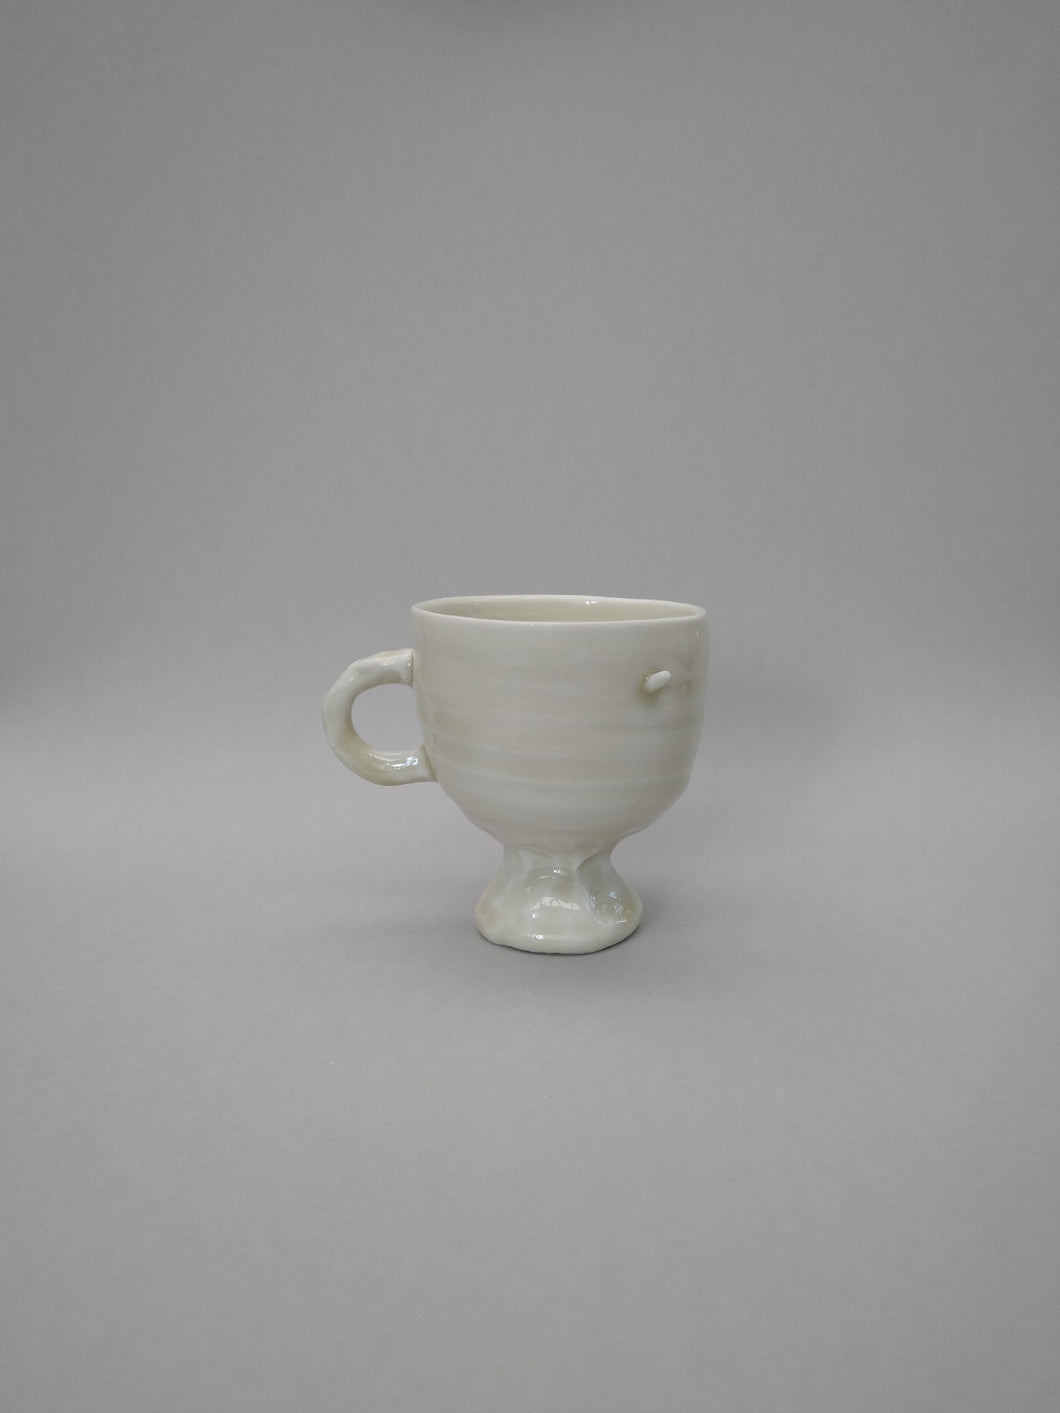 Squishy Footed Porcelain Pedestal Mug with Double Penetration & Green Tea Celadon